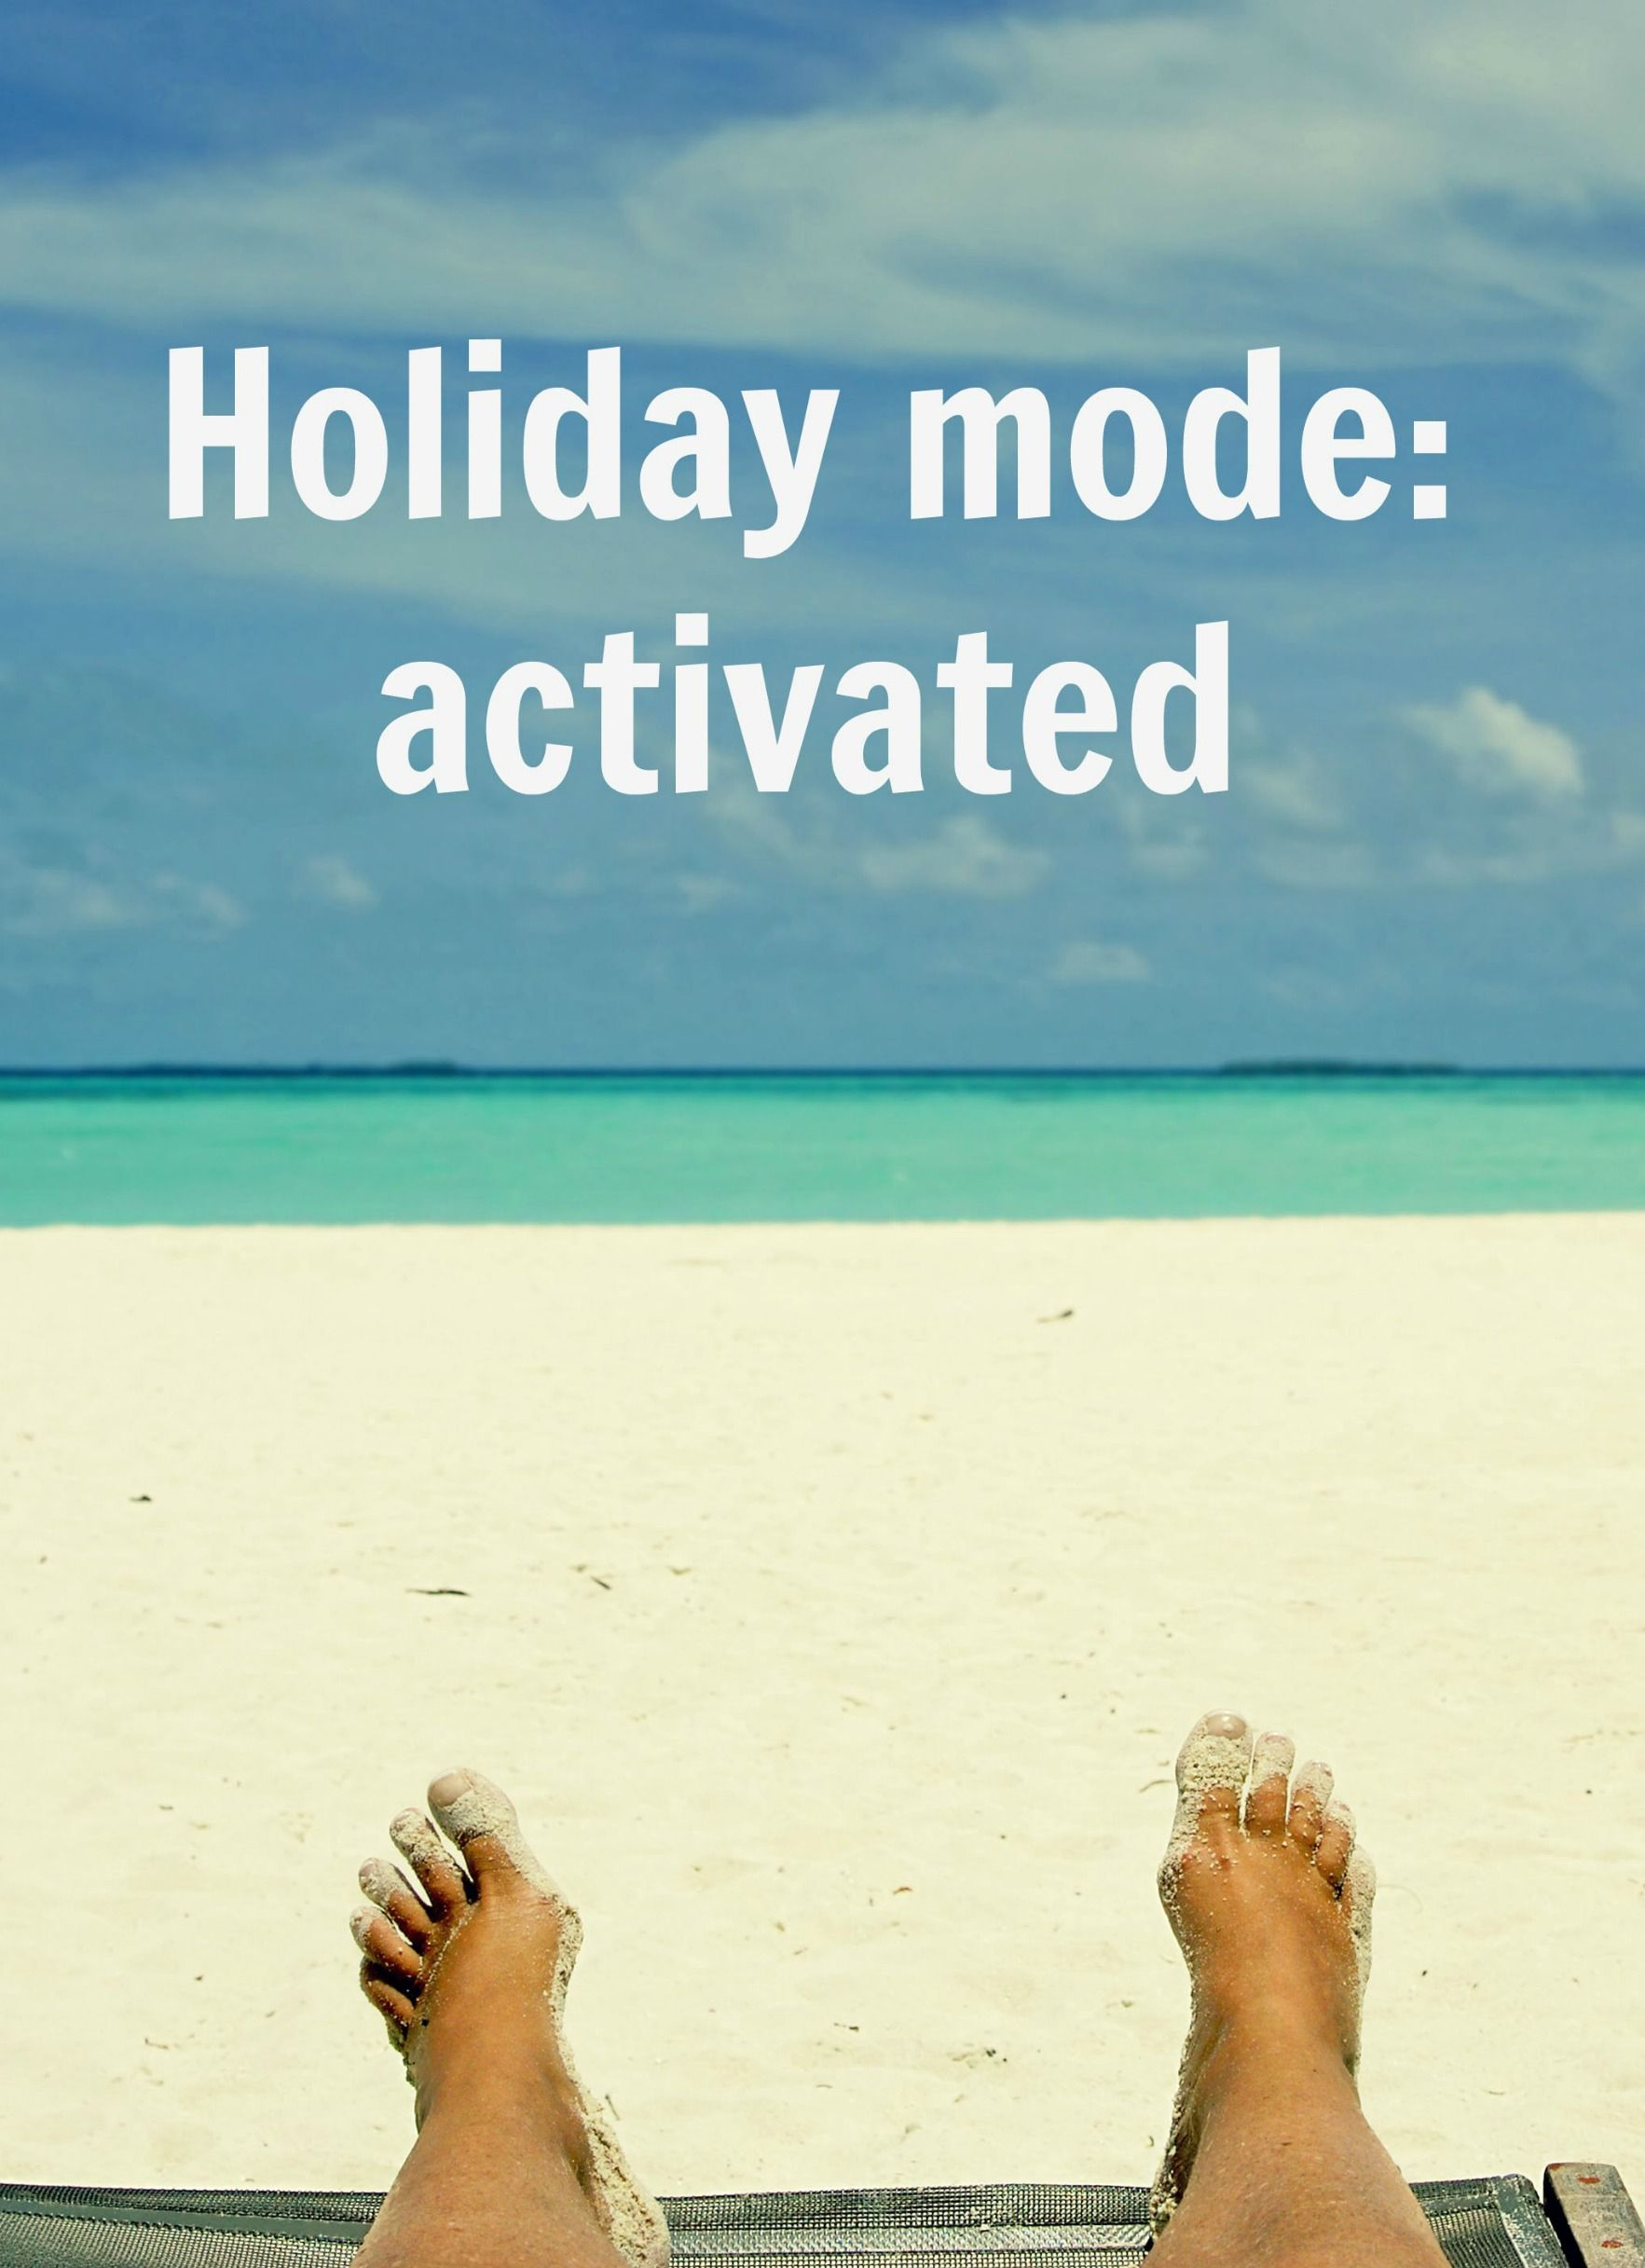 Holiday Quotes Holiday time anyone?   HOLIDAY MODE ACTIVATED!   travel quotes  Holiday Quotes